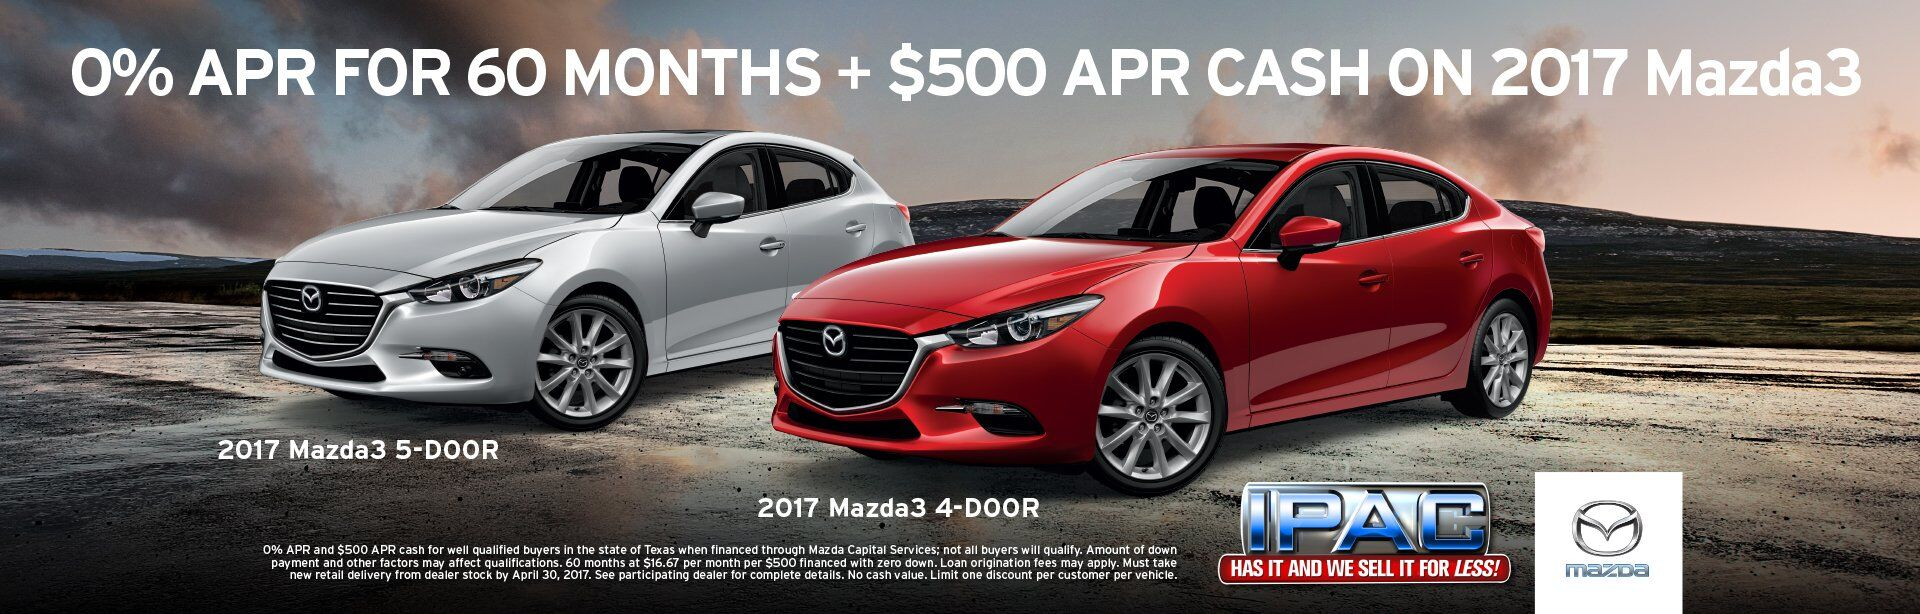 0% APR for 60 Months Mazda3